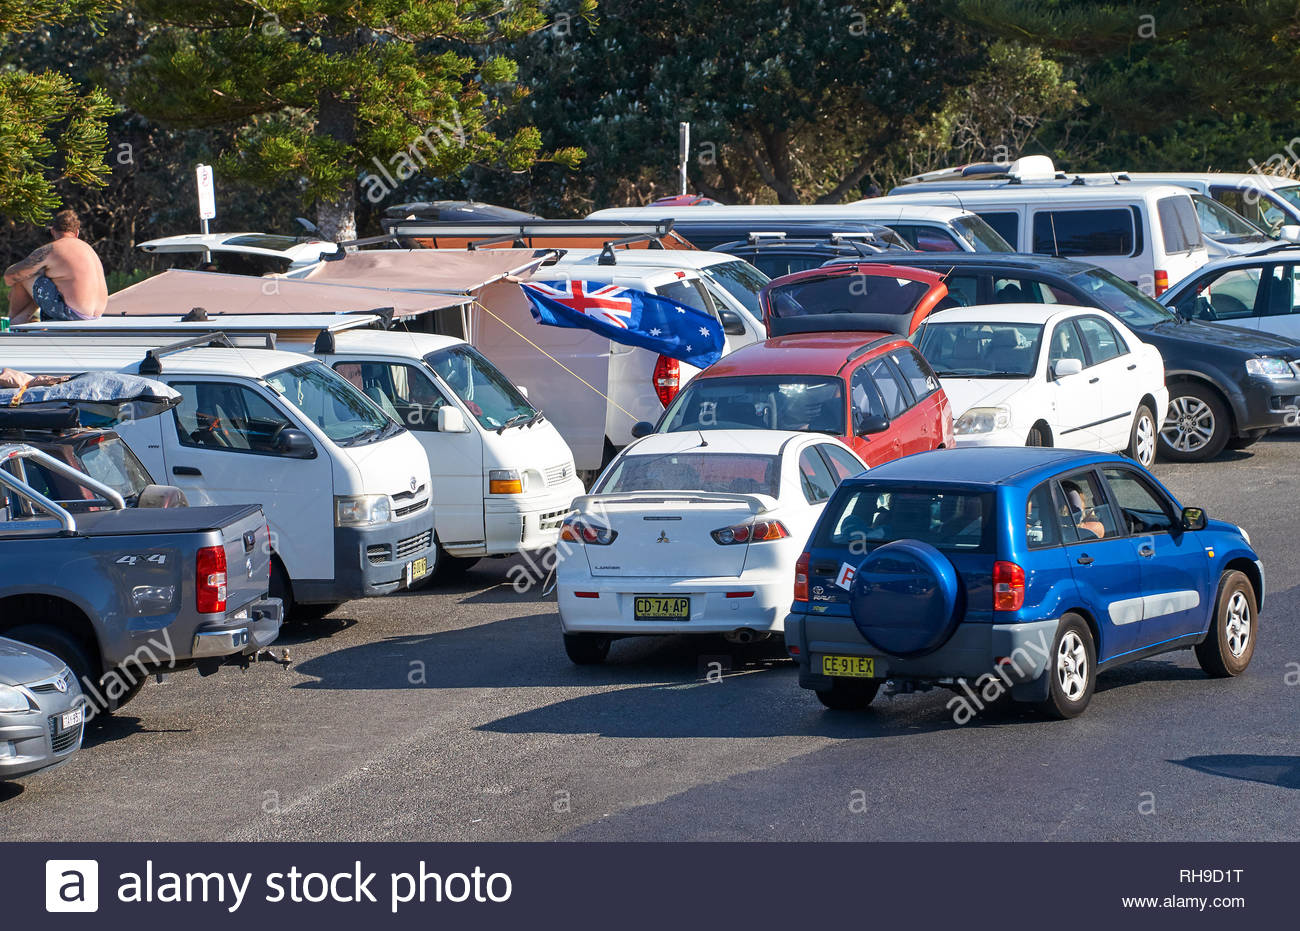 Lots of cars parked together - people gathering - above the beach to celebrate colonisation; on Australia Day - Invasion Day - Yamba, NSW, Australia. - Stock Image